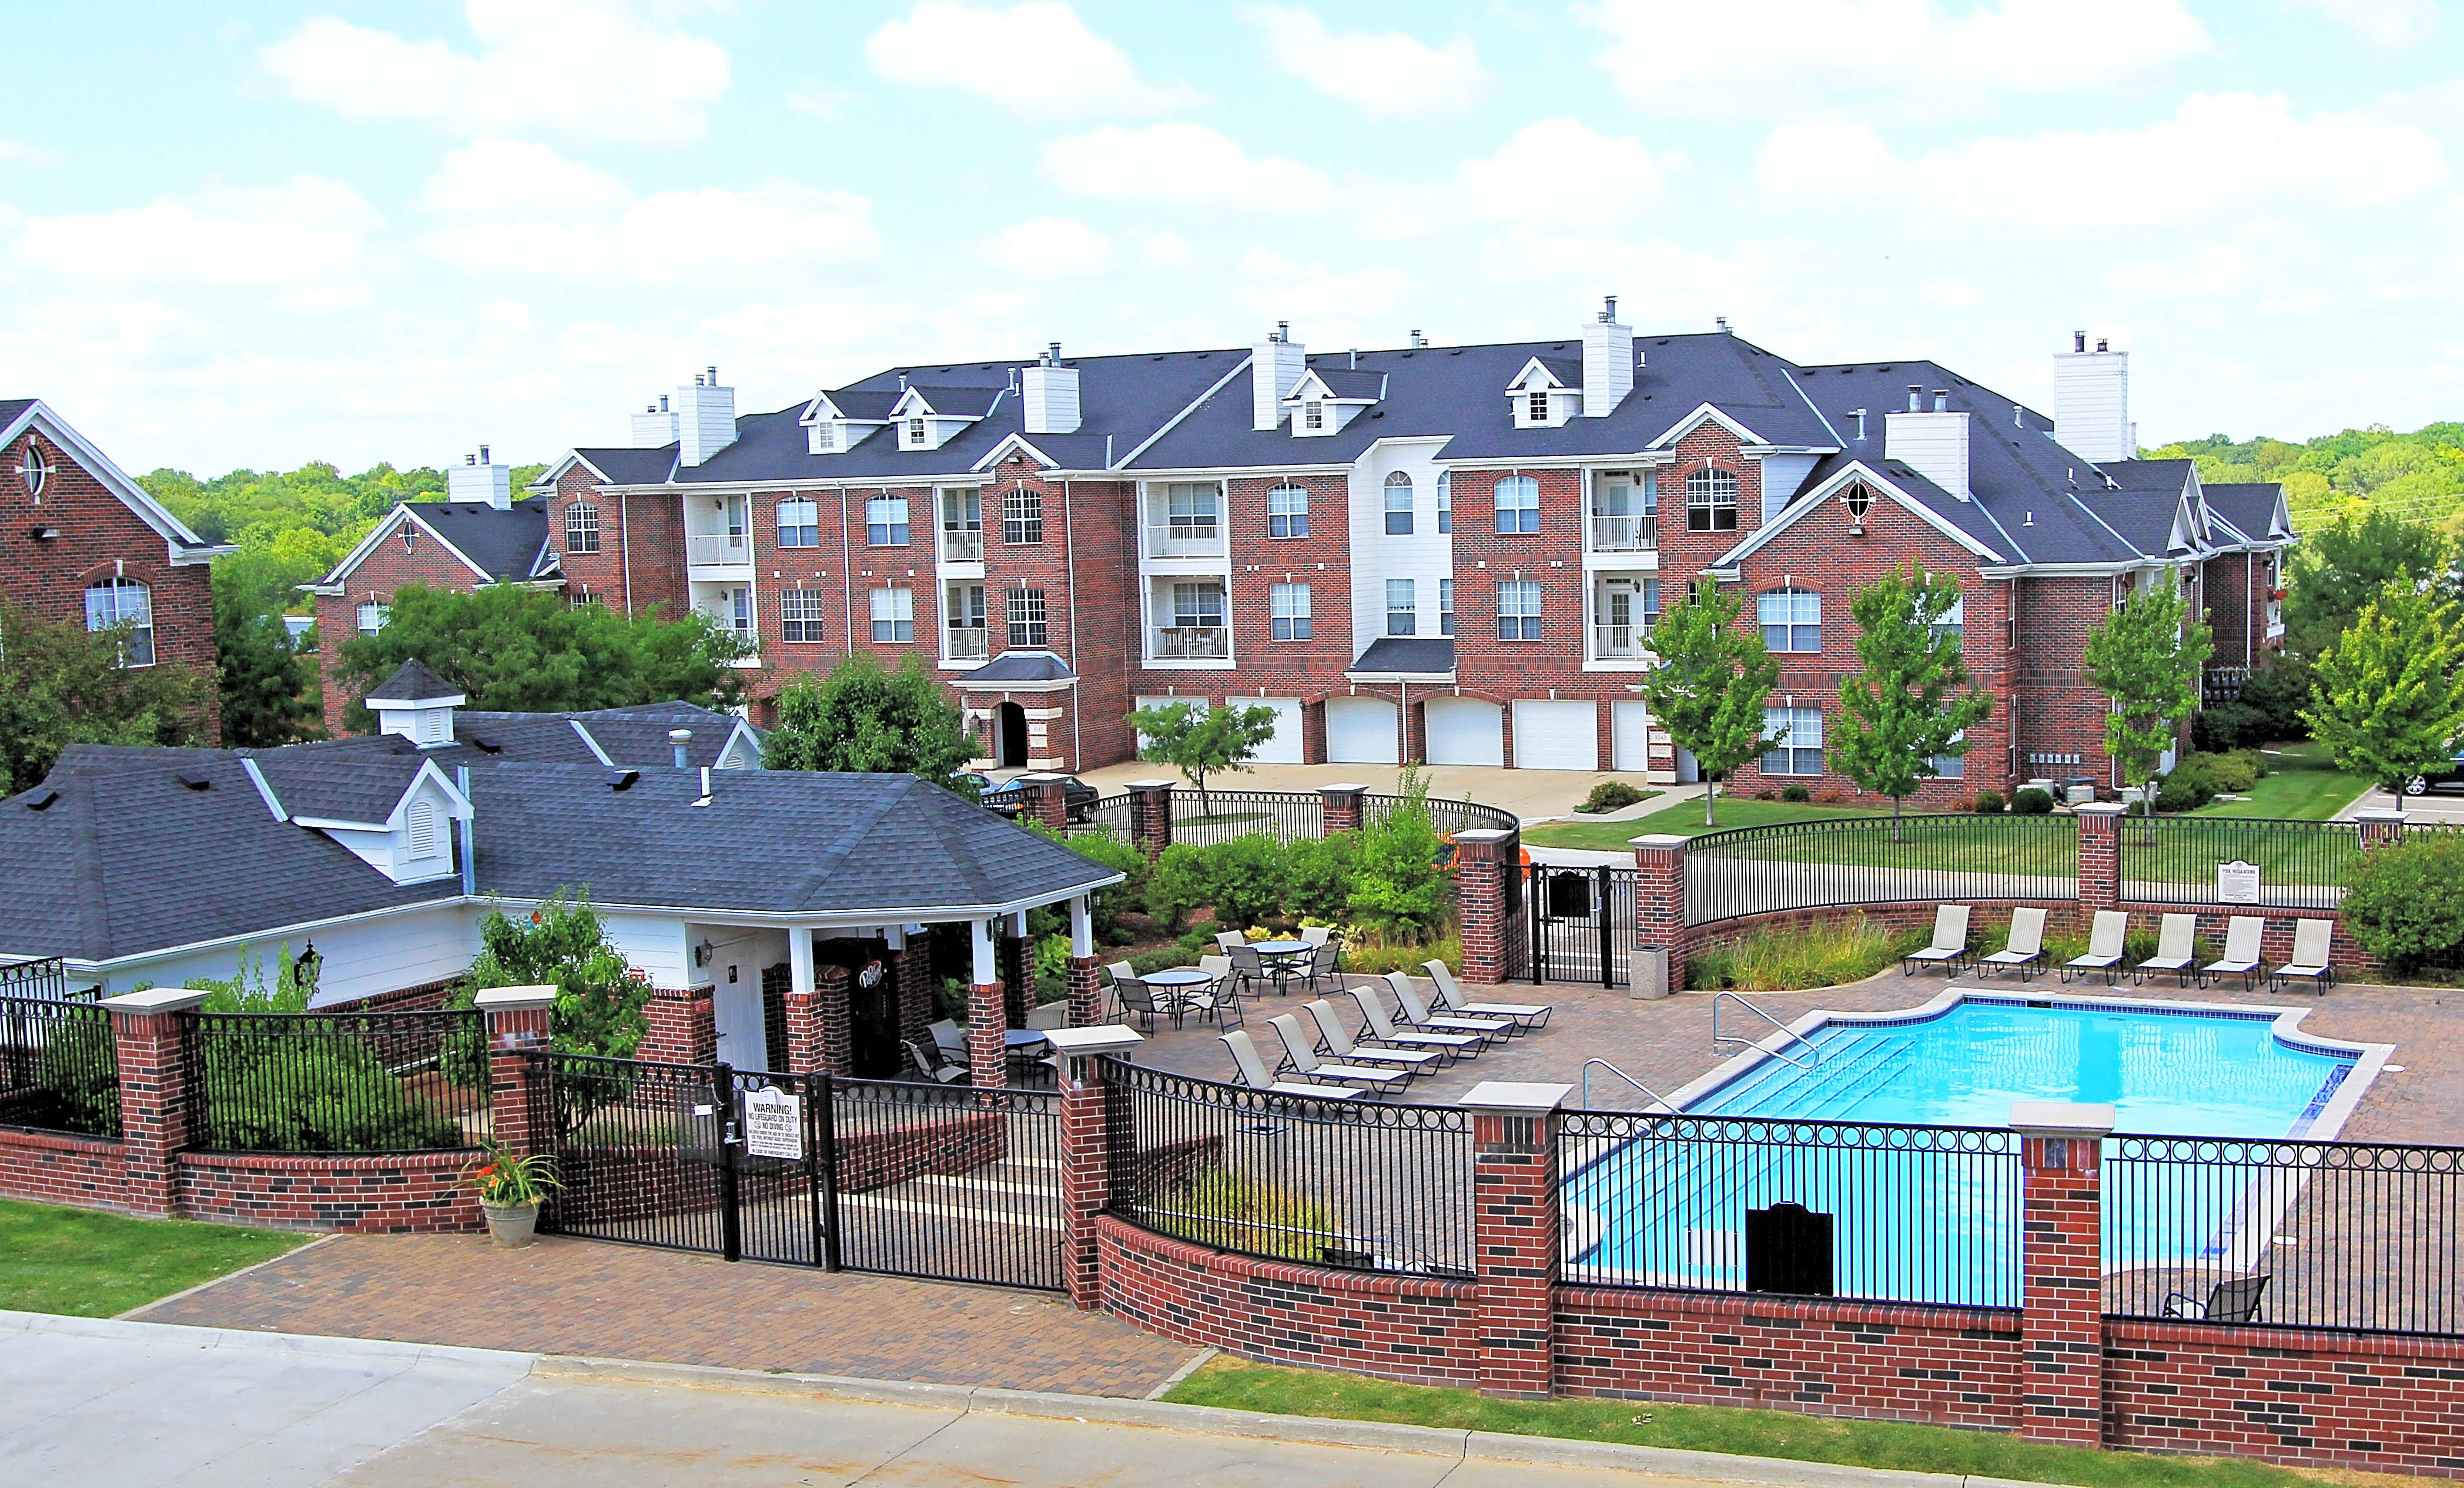 Apartments Near Iowa School of Beauty-Des Moines Saddlebrook for Iowa School of Beauty-Des Moines Students in Des Moines, IA